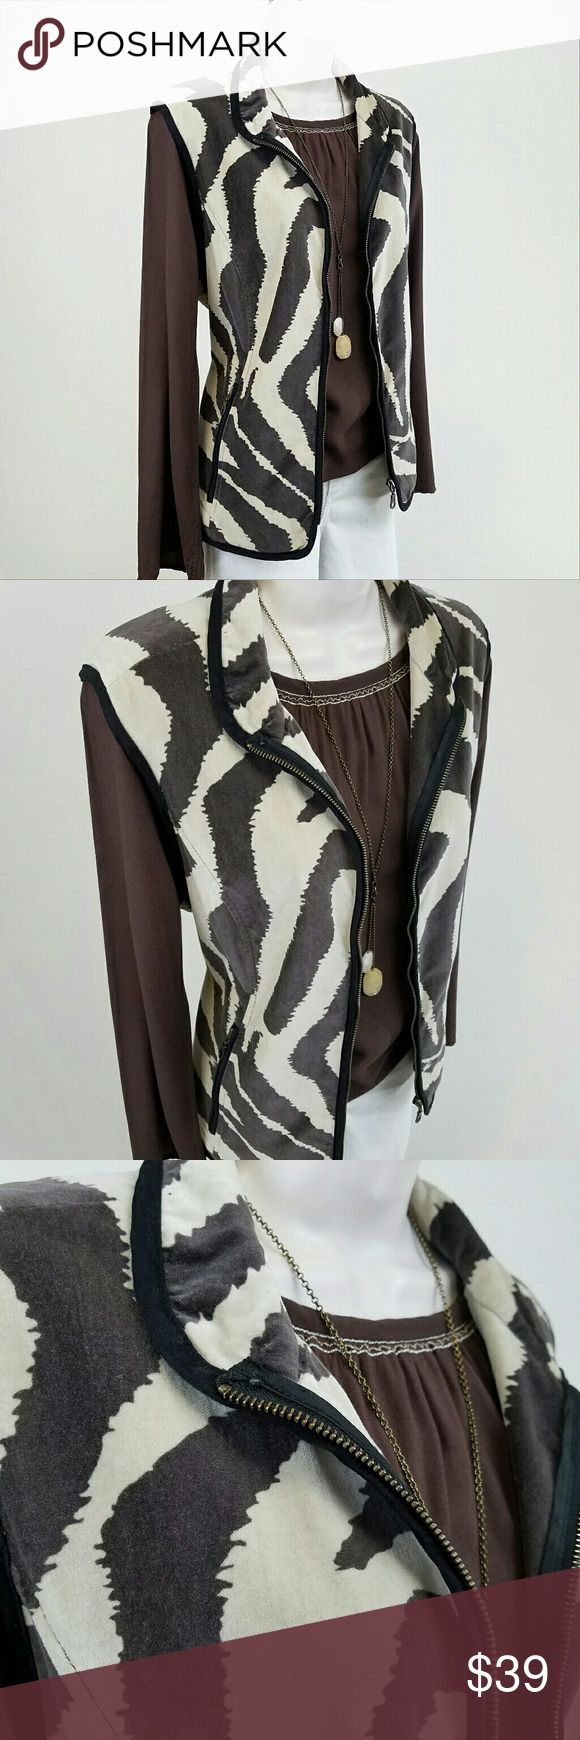 Tasha Polizzi animal print vest: brown, white Sleeveless zip front velvet vest in a brown & off white animal print pattern.  Lined, with on-seam zip pockets & snap tabs on side.  Western chic! Looks great with boots & jeans.  Bust 21 / length 24.5 inches.  100% cotton. Tasha Polizzi Collection Jackets & Coats Vests